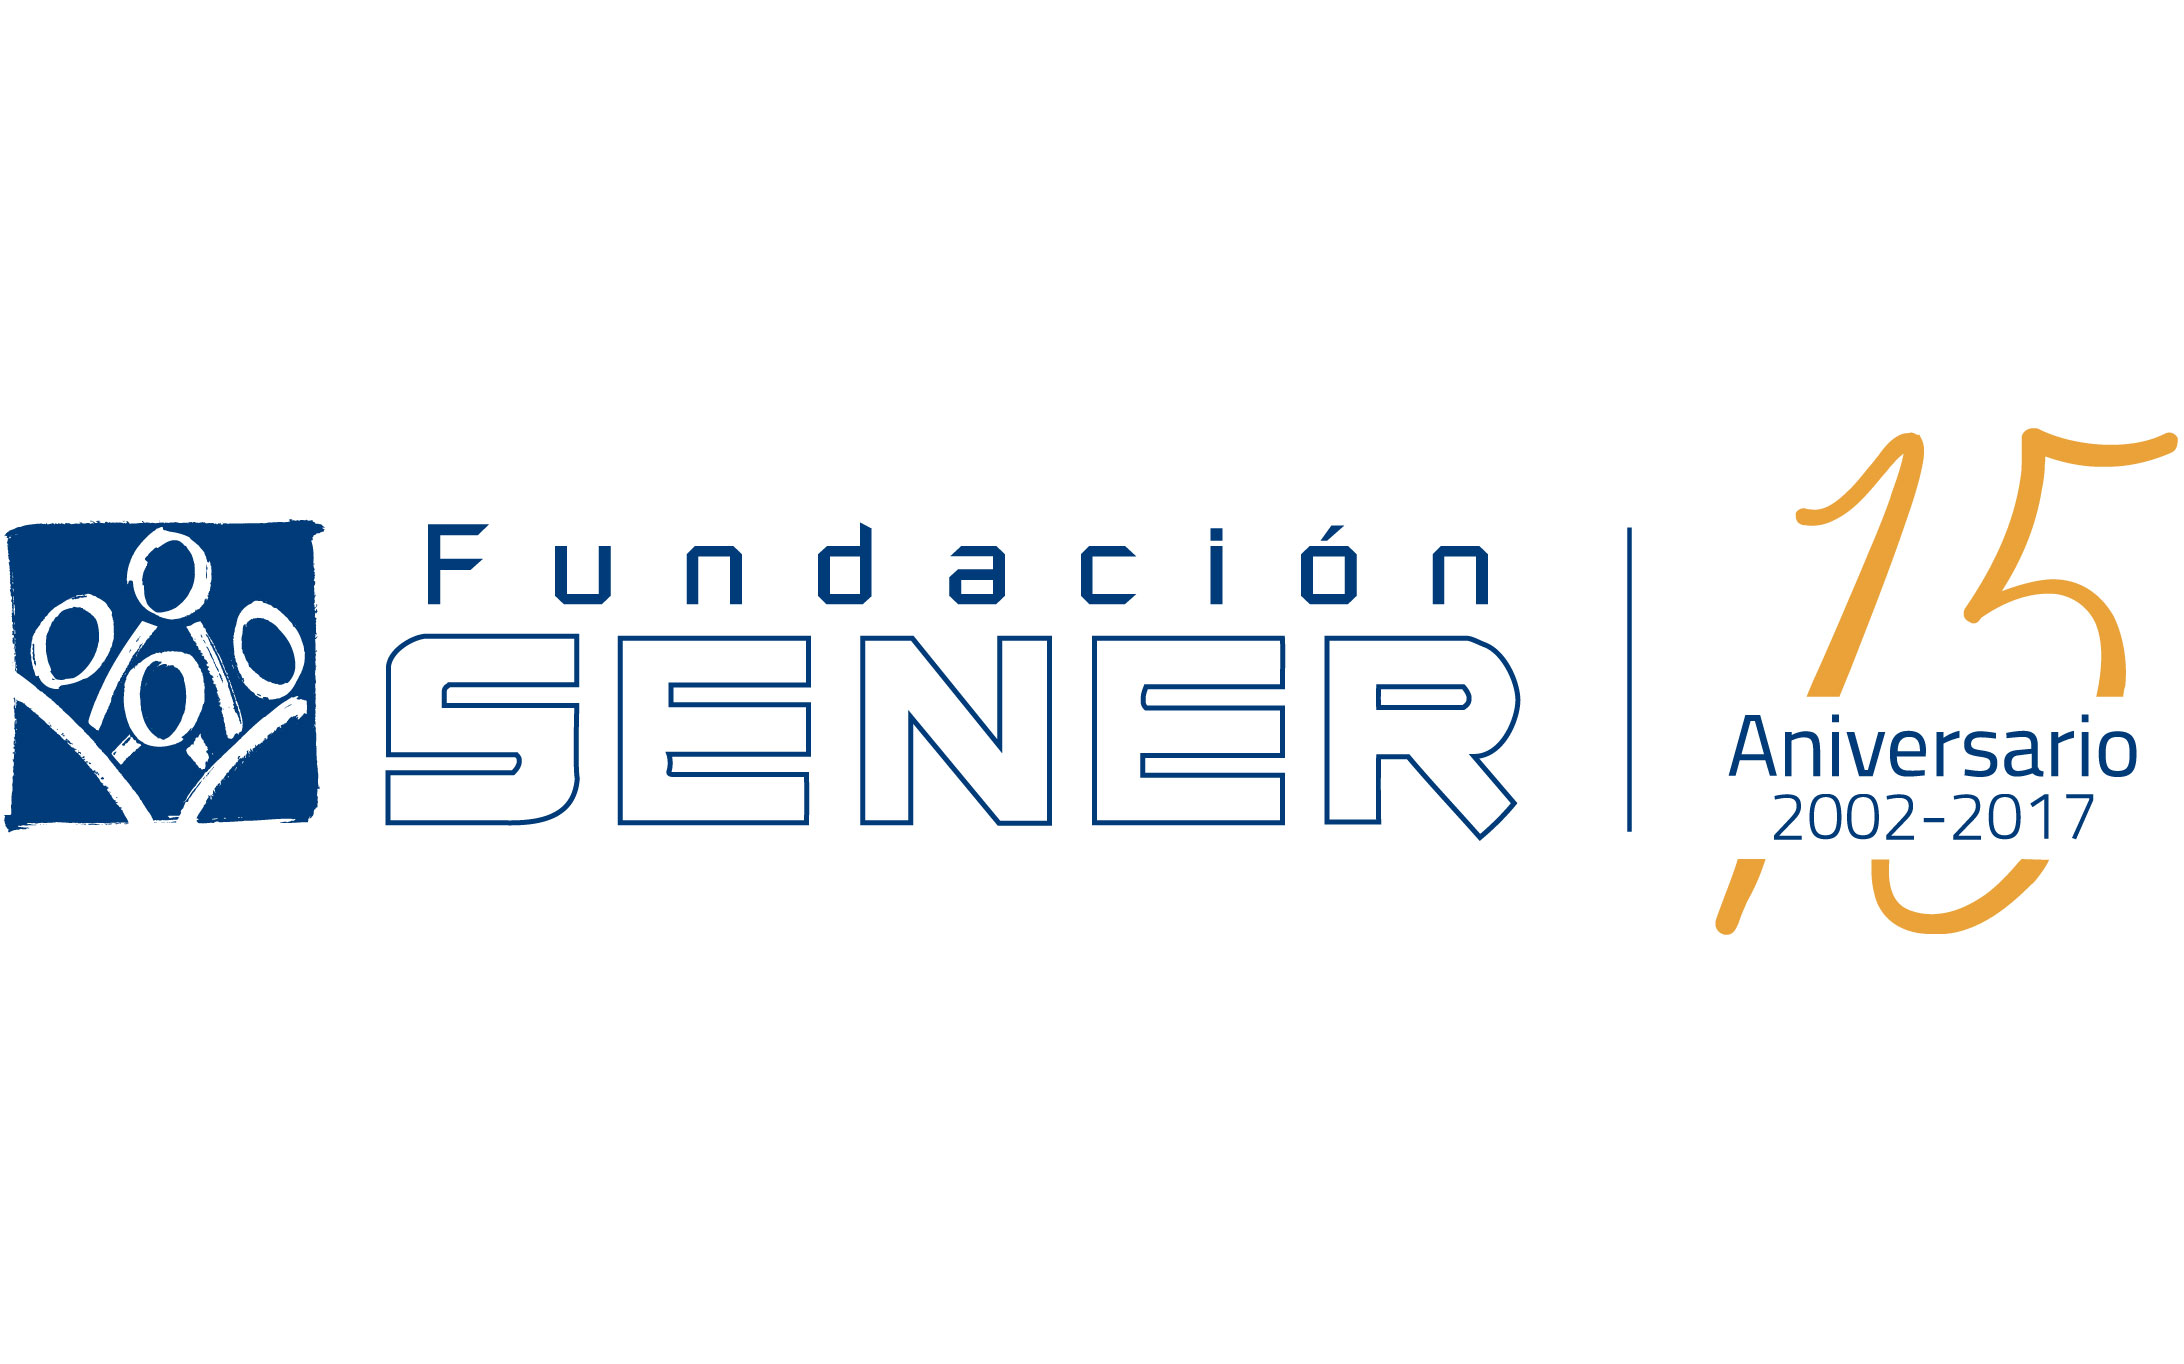 SENER Foundation celebrates 15 years